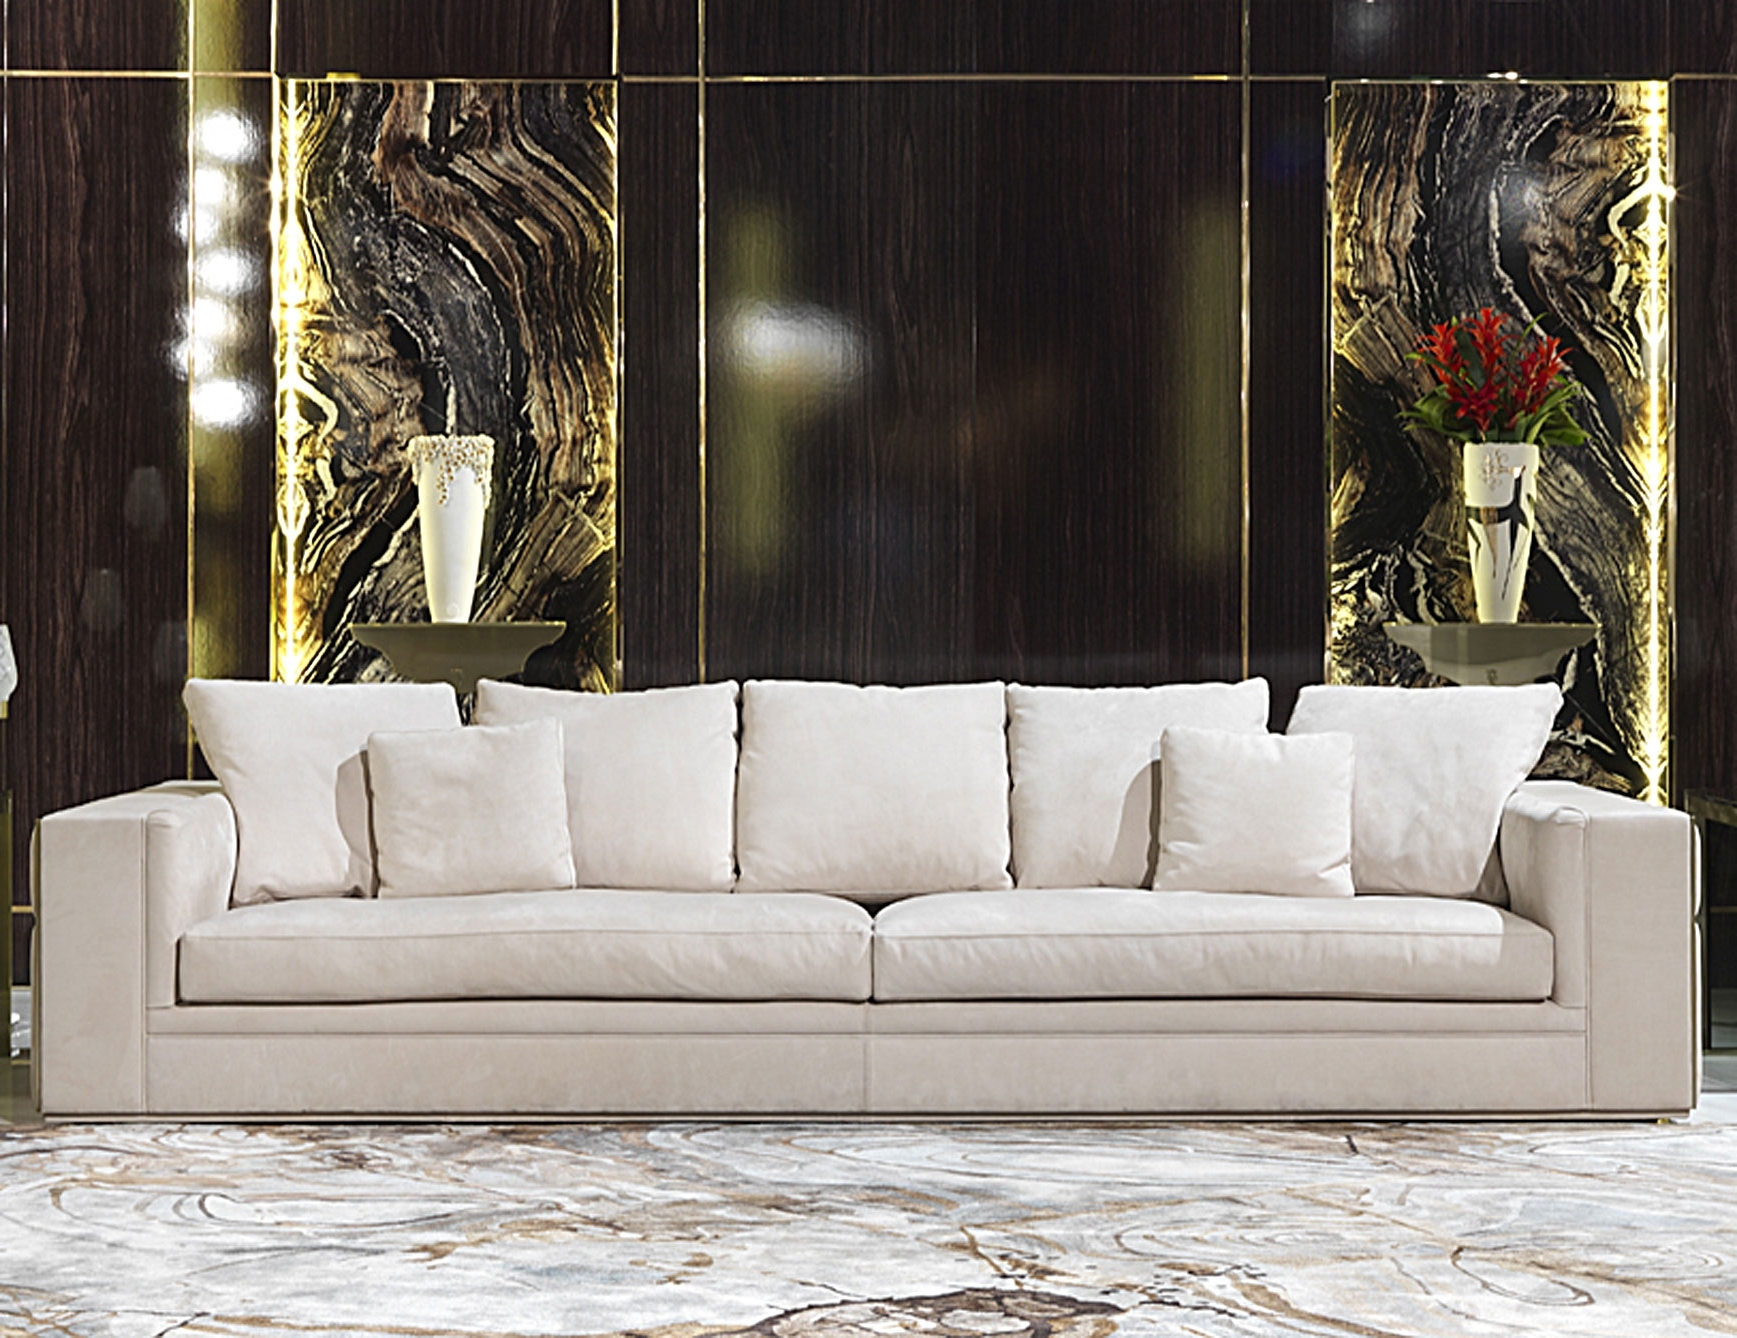 Most Up To Date Luxury Sofas Intended For Nella Vetrina Visionnaire Ipe Cavalli Babylon Luxury Italian Sofa (View 8 of 20)